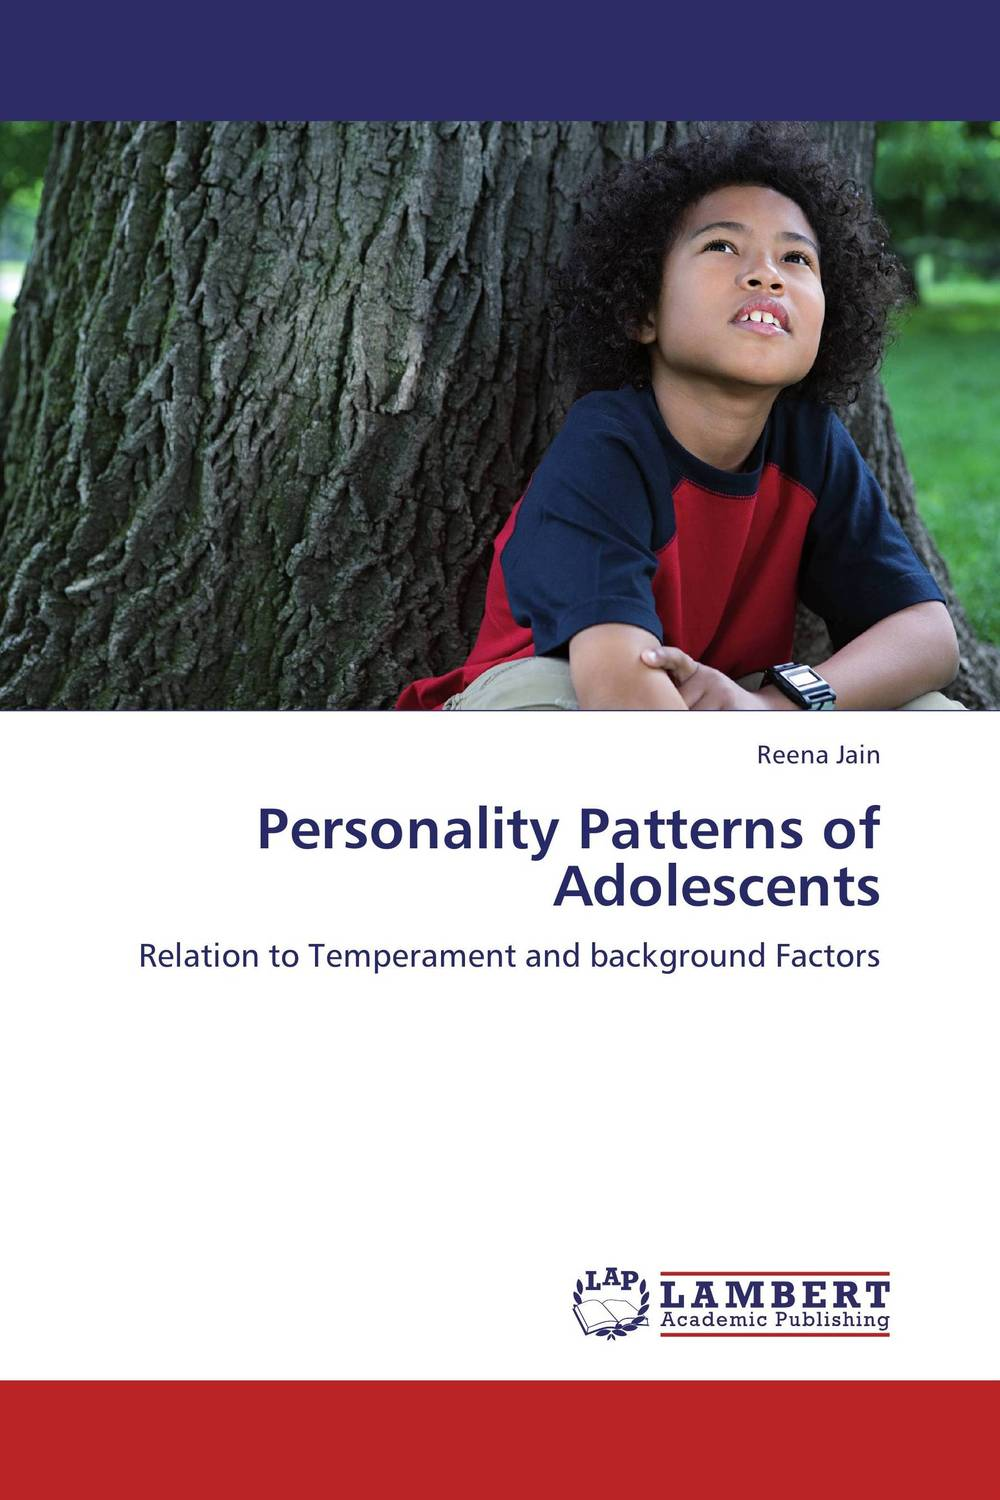 Personality Patterns of Adolescents tv addiction and personality styles of adolescents